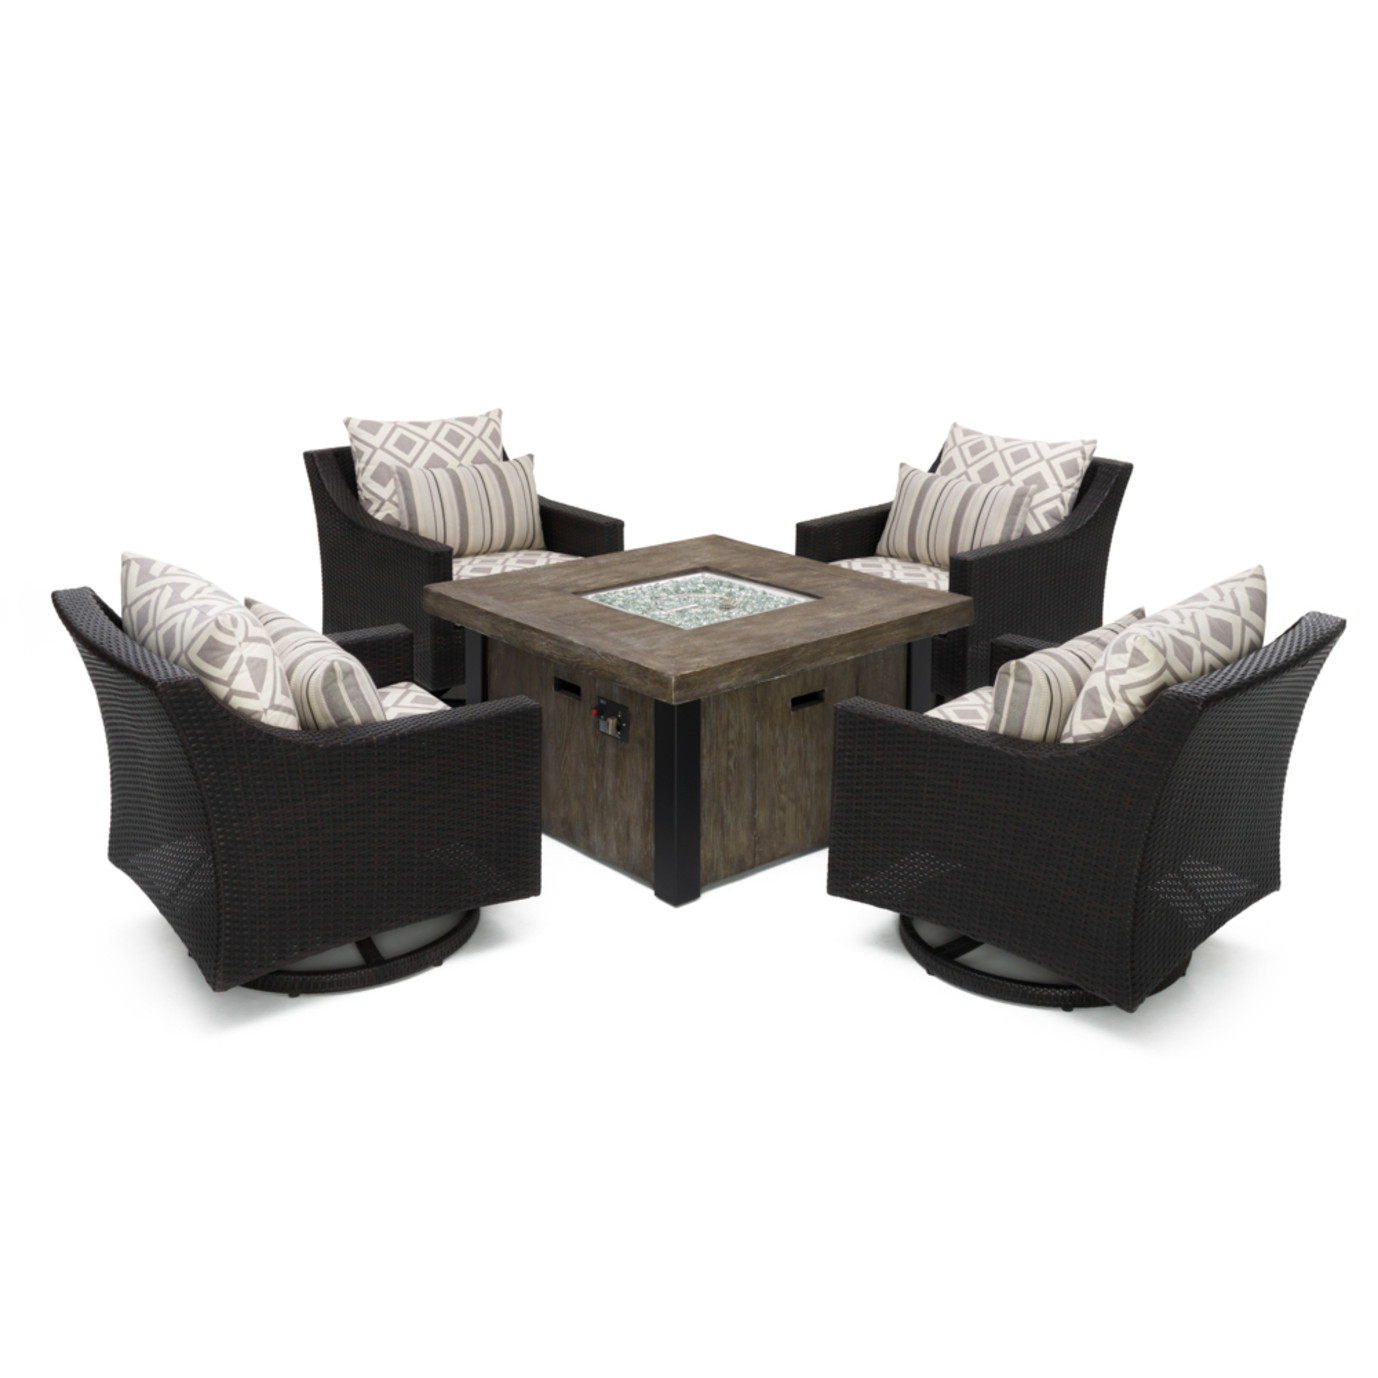 Deco™ Deluxe 5pc Motion Fire Chat Set - Wisteria Lavender